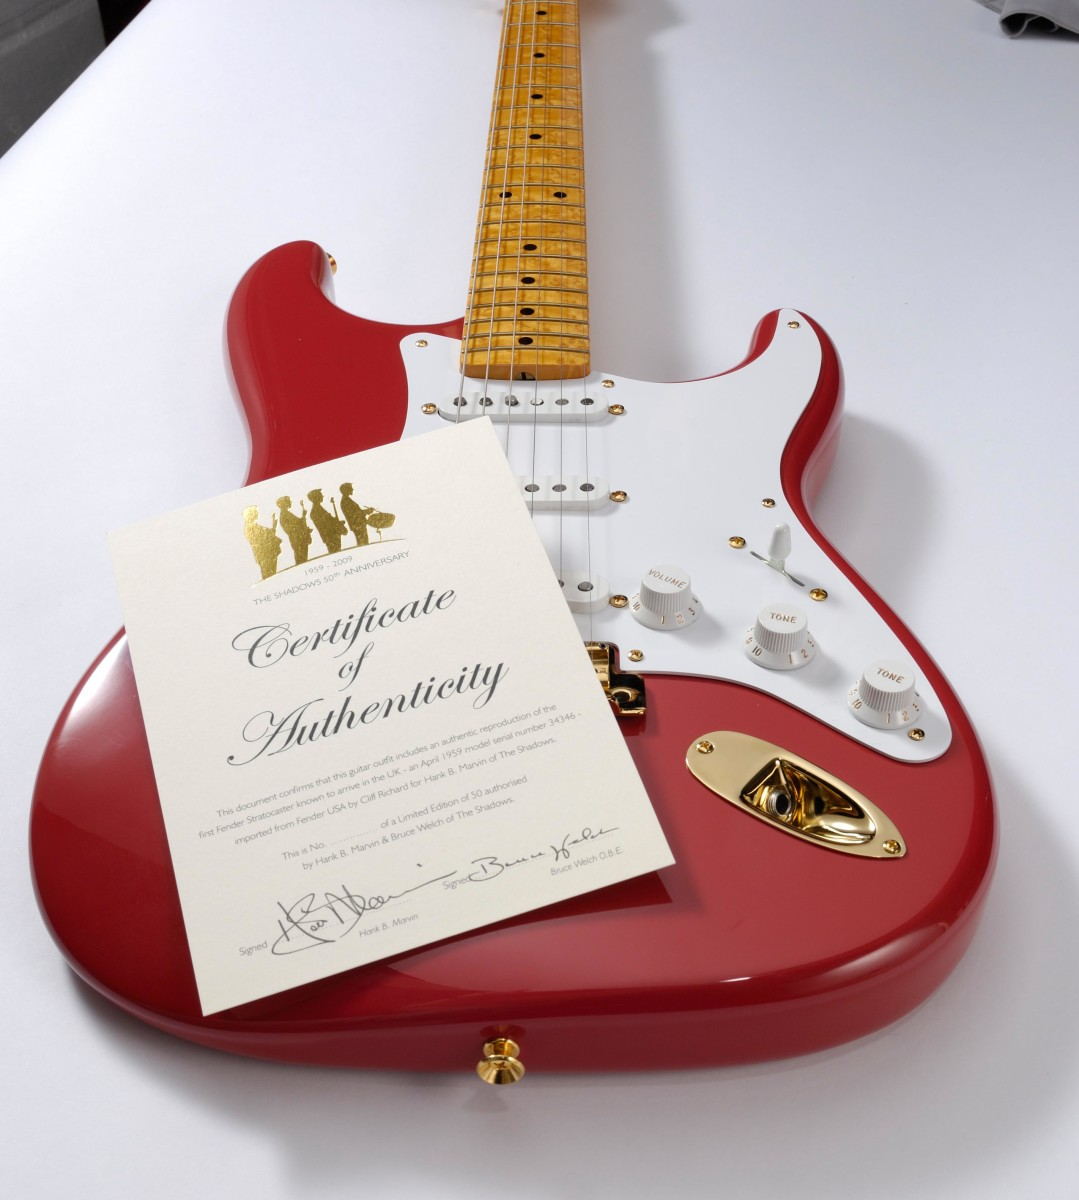 Fender Custom Shop Red Stratocaster 59